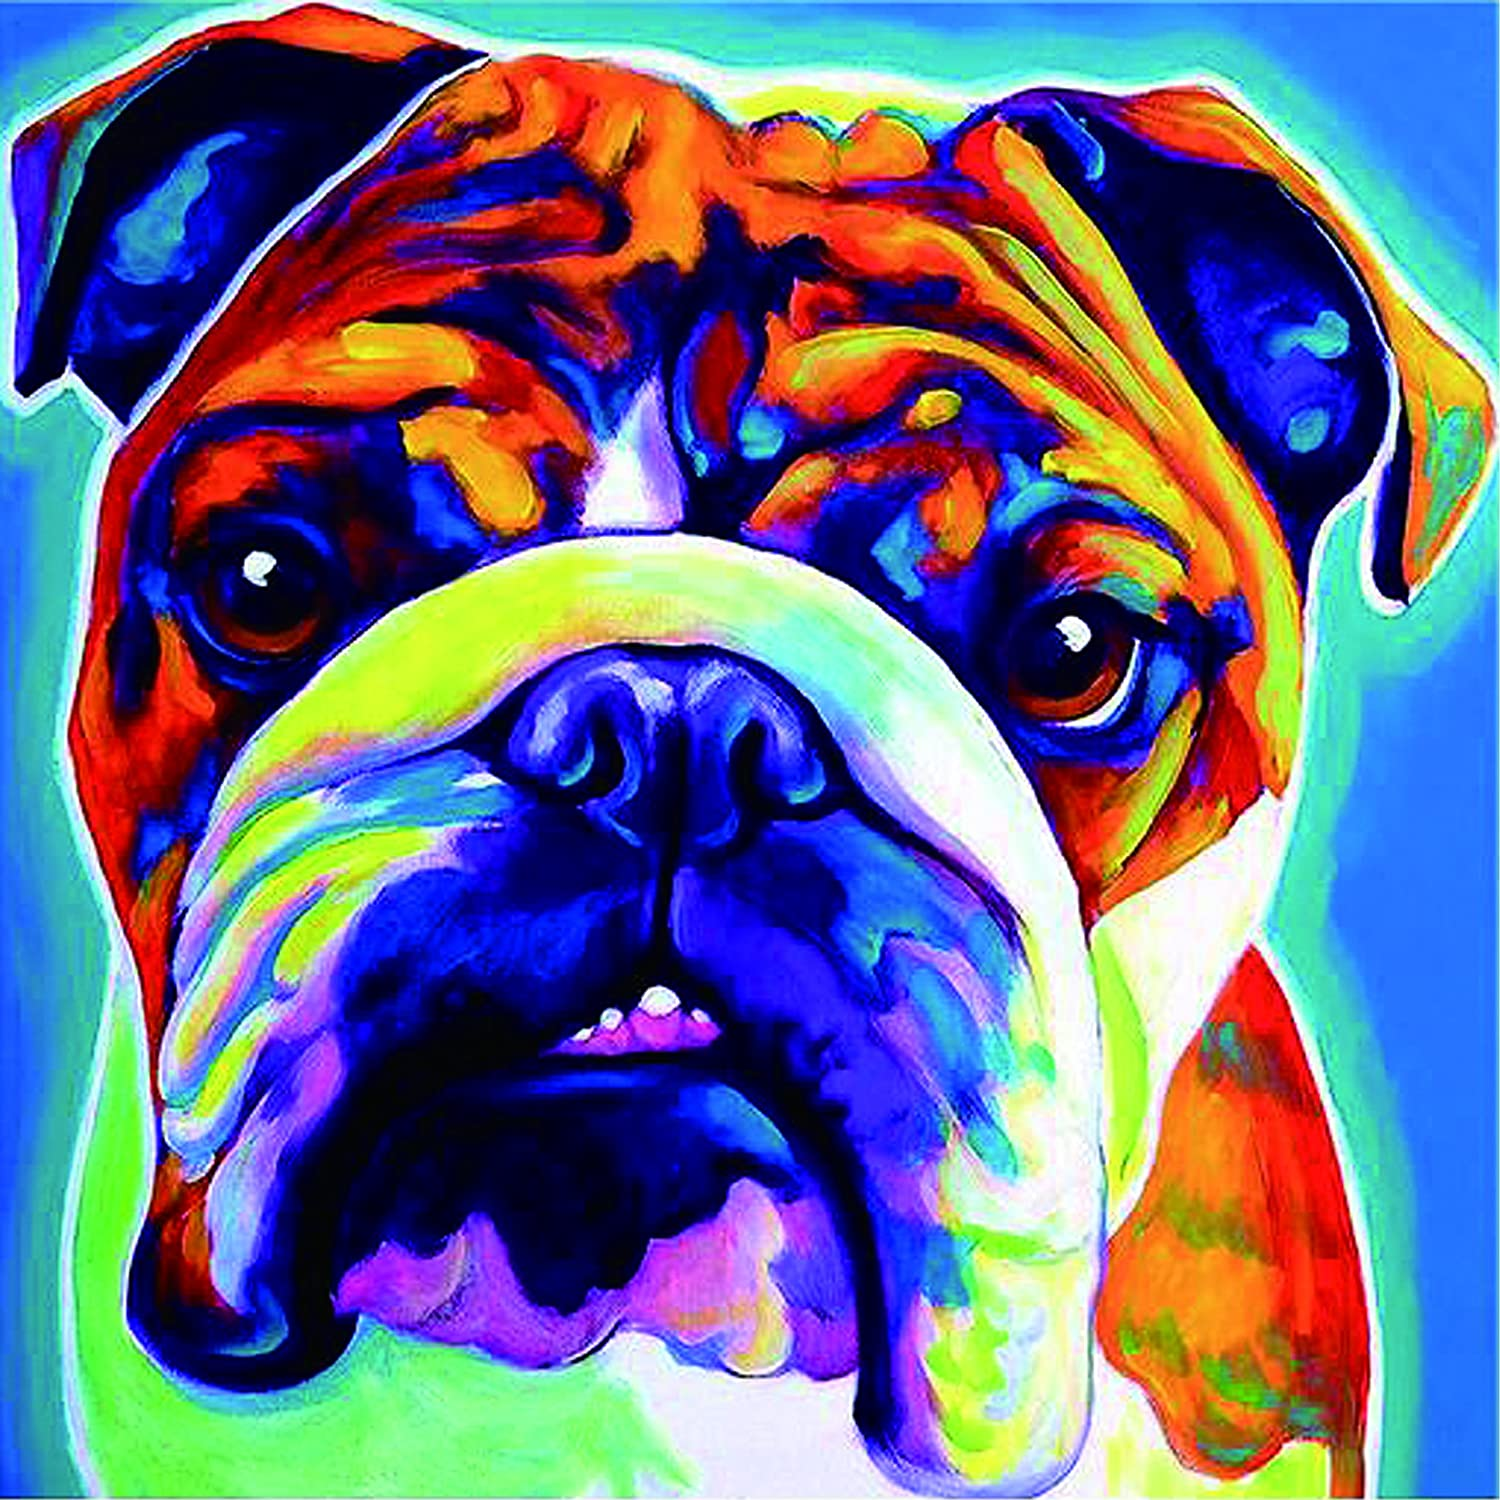 TianMaiGeLun New DIY 5D Diamond Painting Kits Diamond Embroidery Art Painting Pasted Paint By Number Kits Stitch Craft Kit Home Decor Wall Sticker - Colorful Bulldog, 30x30cm